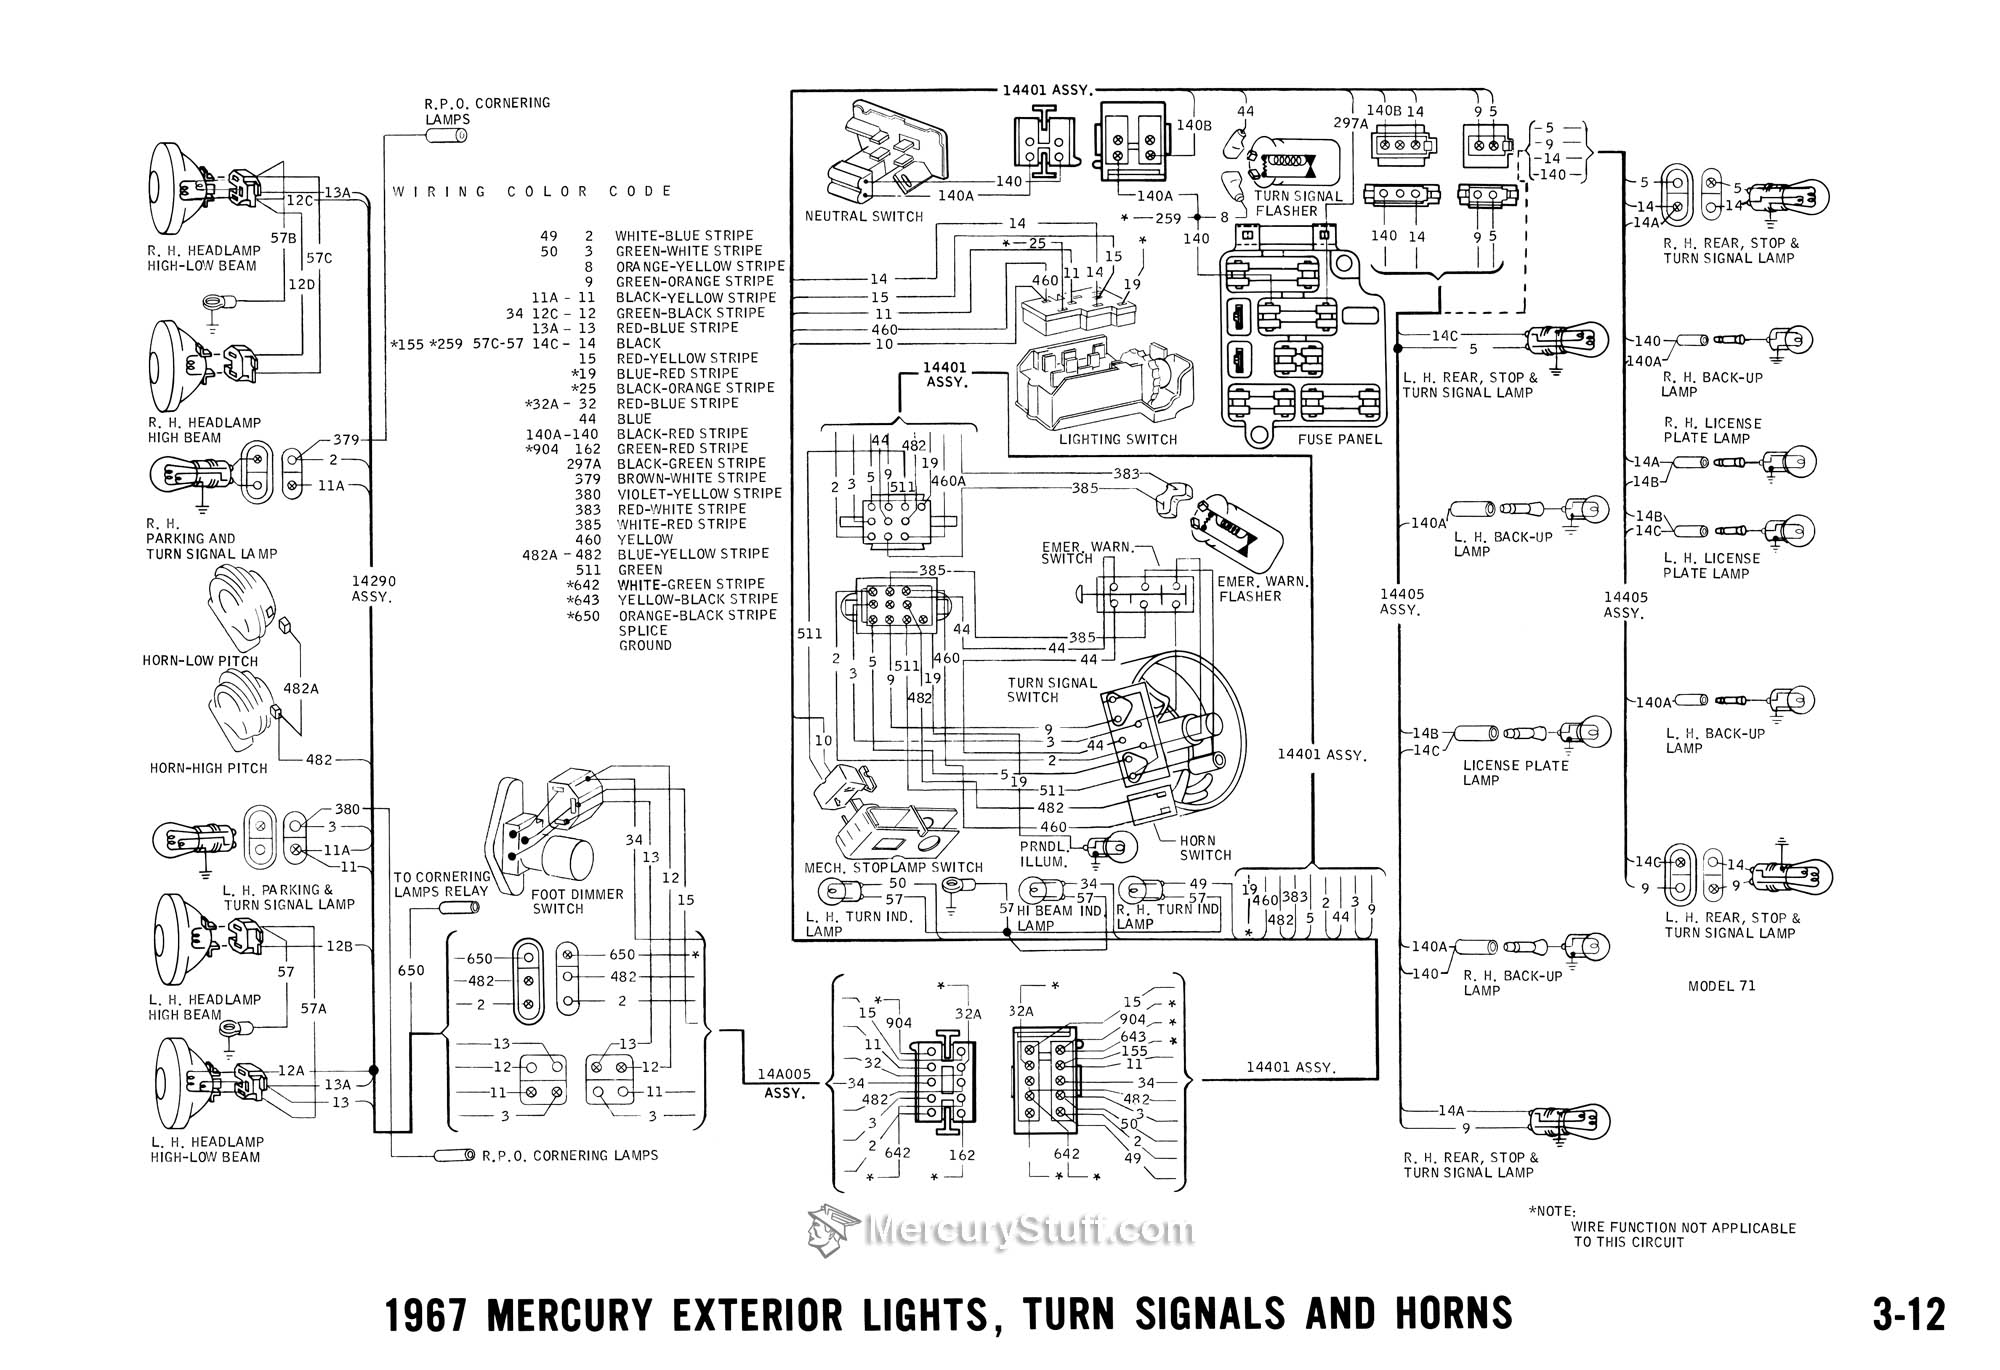 1967 mercury exterior lights turn signals horns wiring diagram 2006 mercury grand marquis the wiring diagram mercury 14 pin wiring harness diagram at edmiracle.co